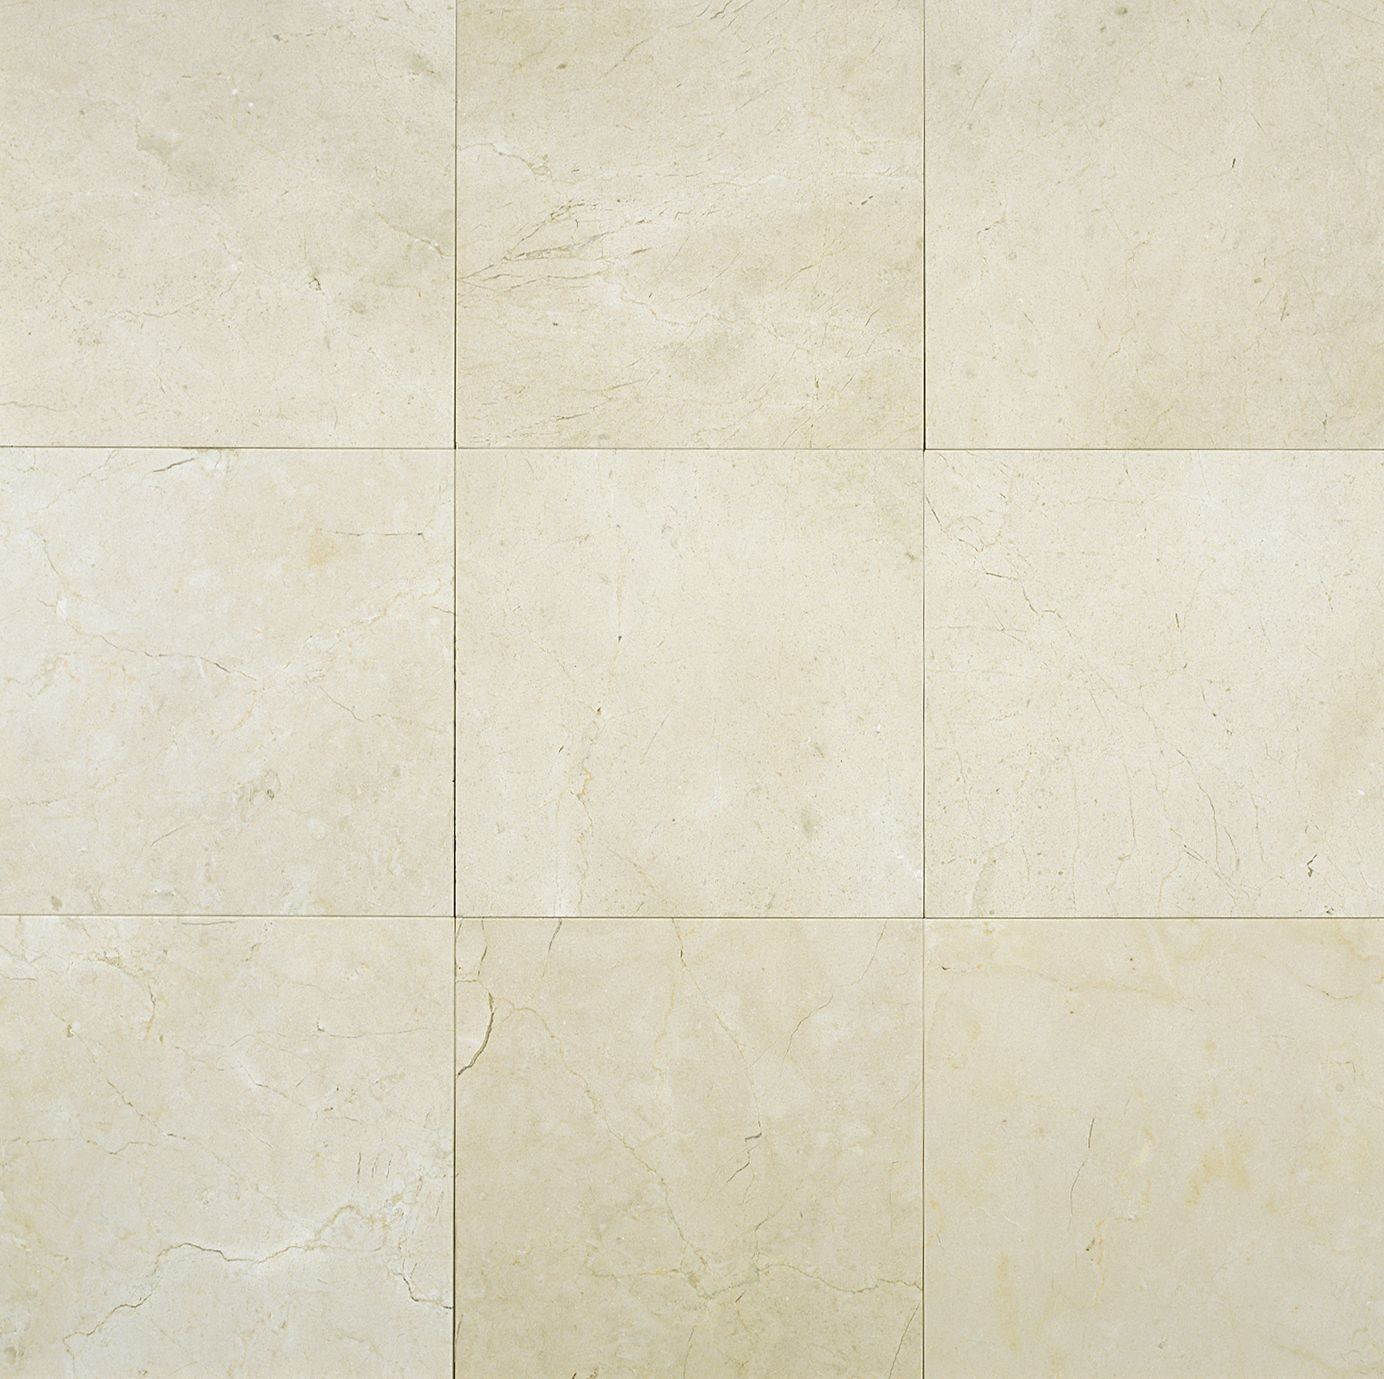 Crema marfil classico 6x6 marble tile polished transitional guest bathroom update pinterest - Textuur tiling ...